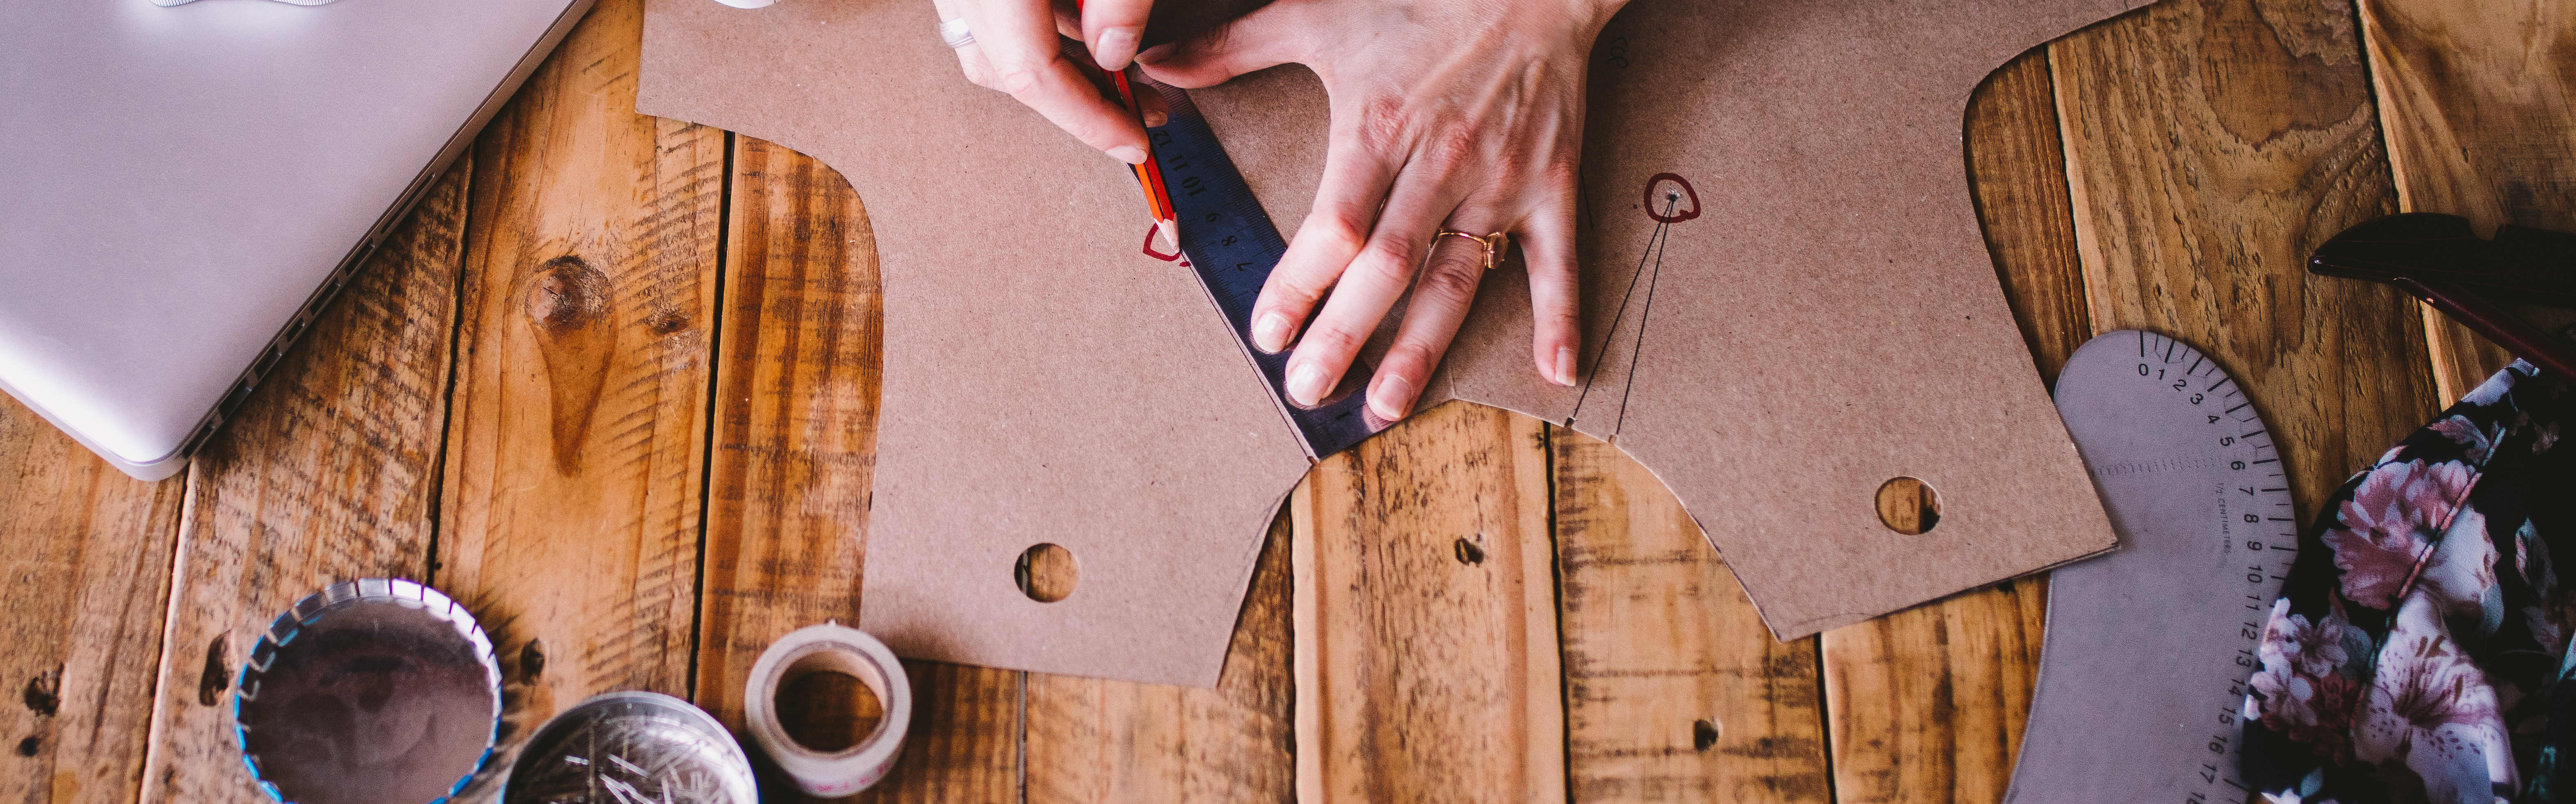 Hands Pattern Making Marking Tools on Wooden Table